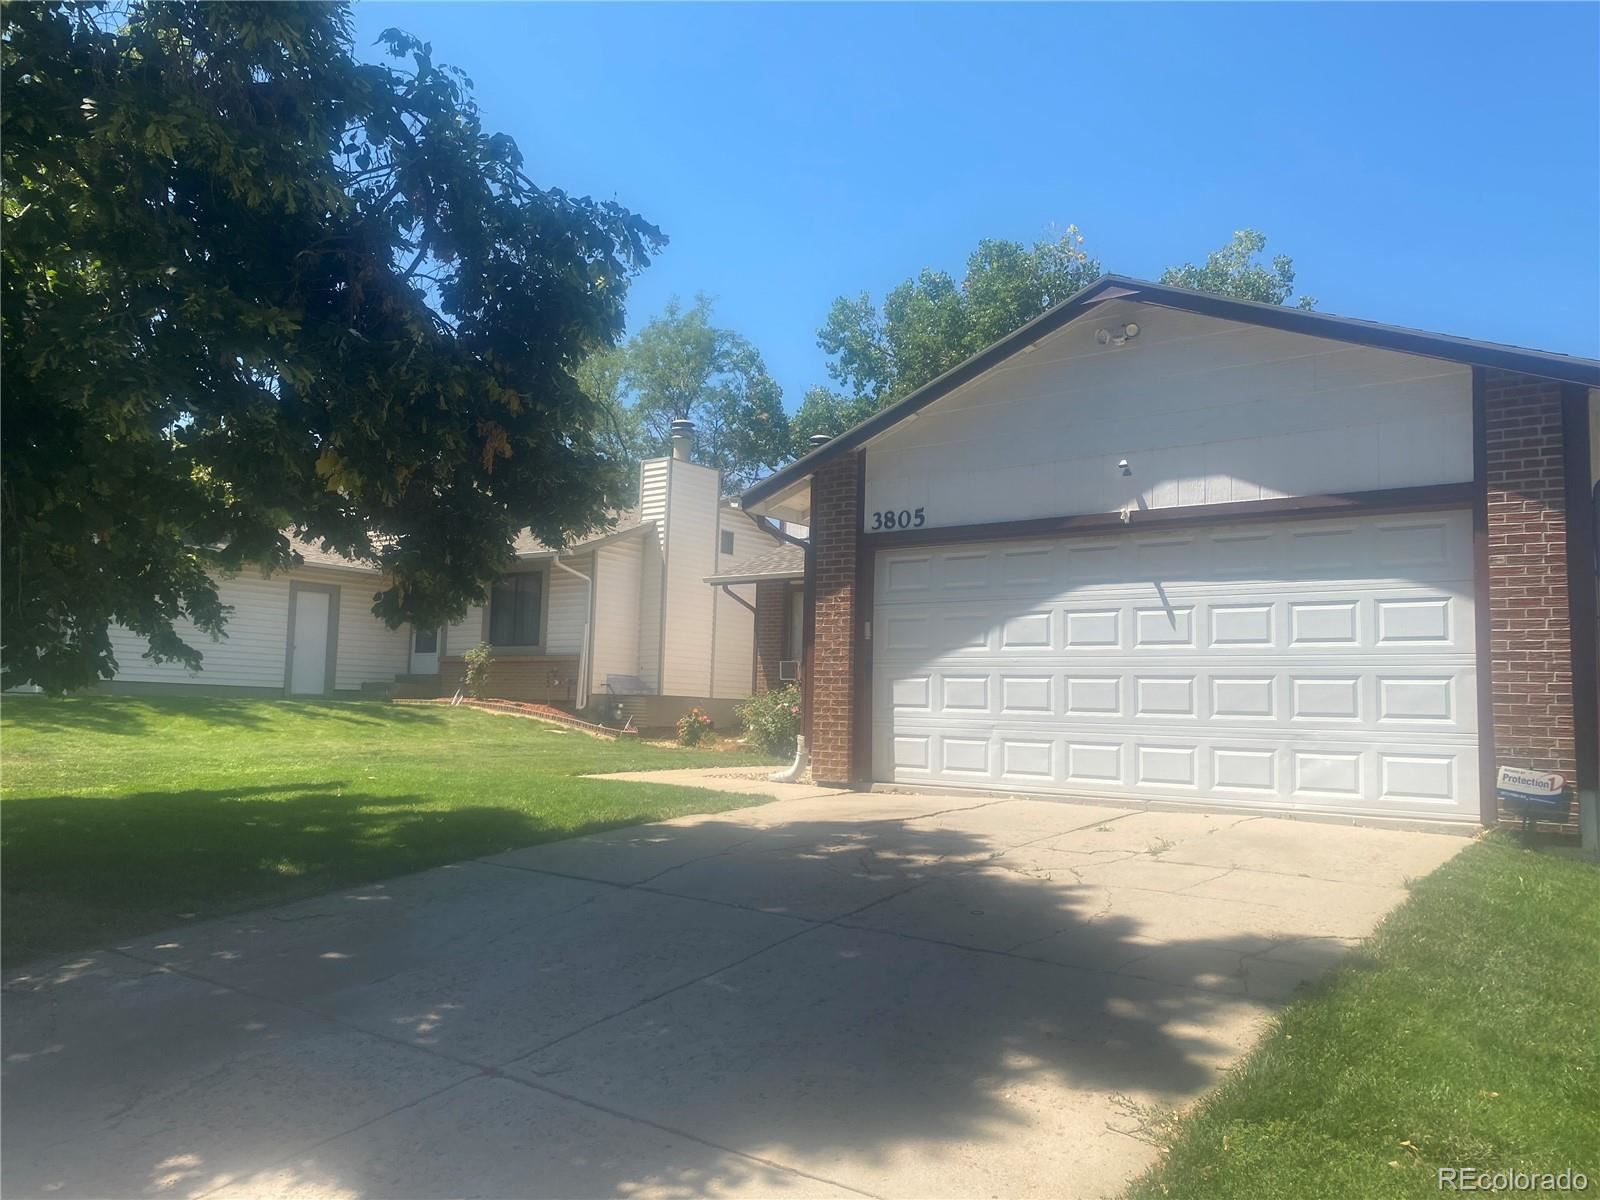 3805 S Ouray Way, Aurora, CO 80013 - #: 6439469